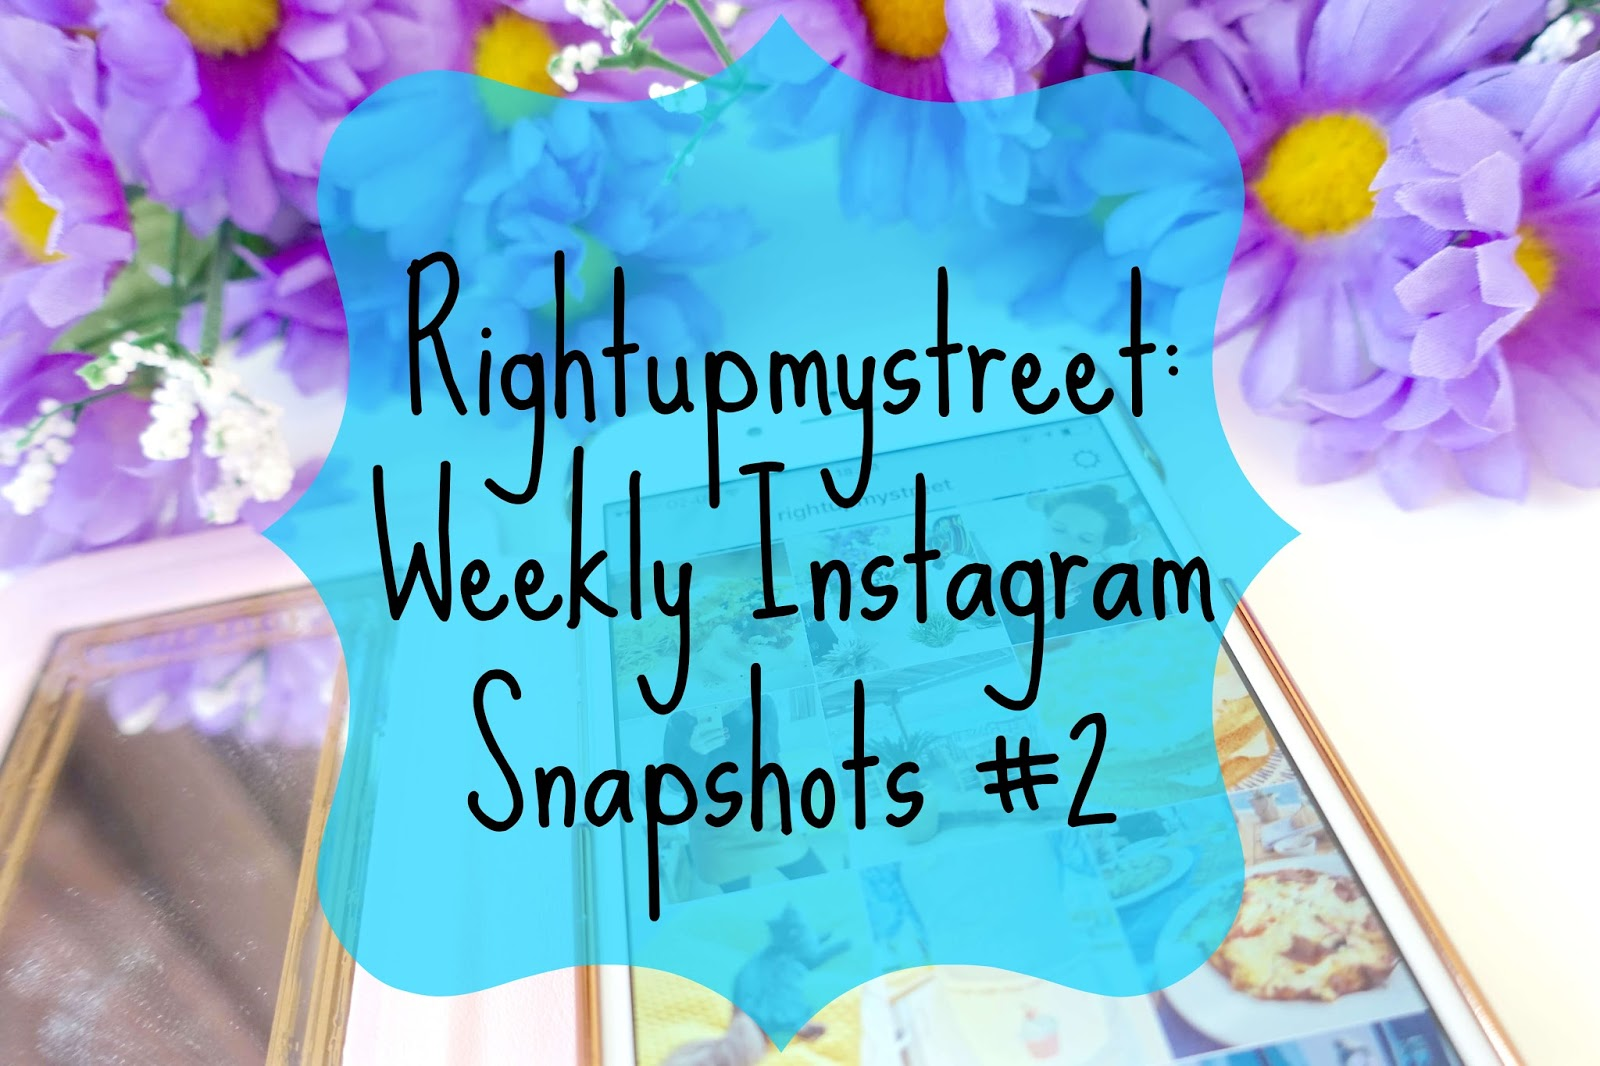 rightupmystreet weekly instagram snapshots #2